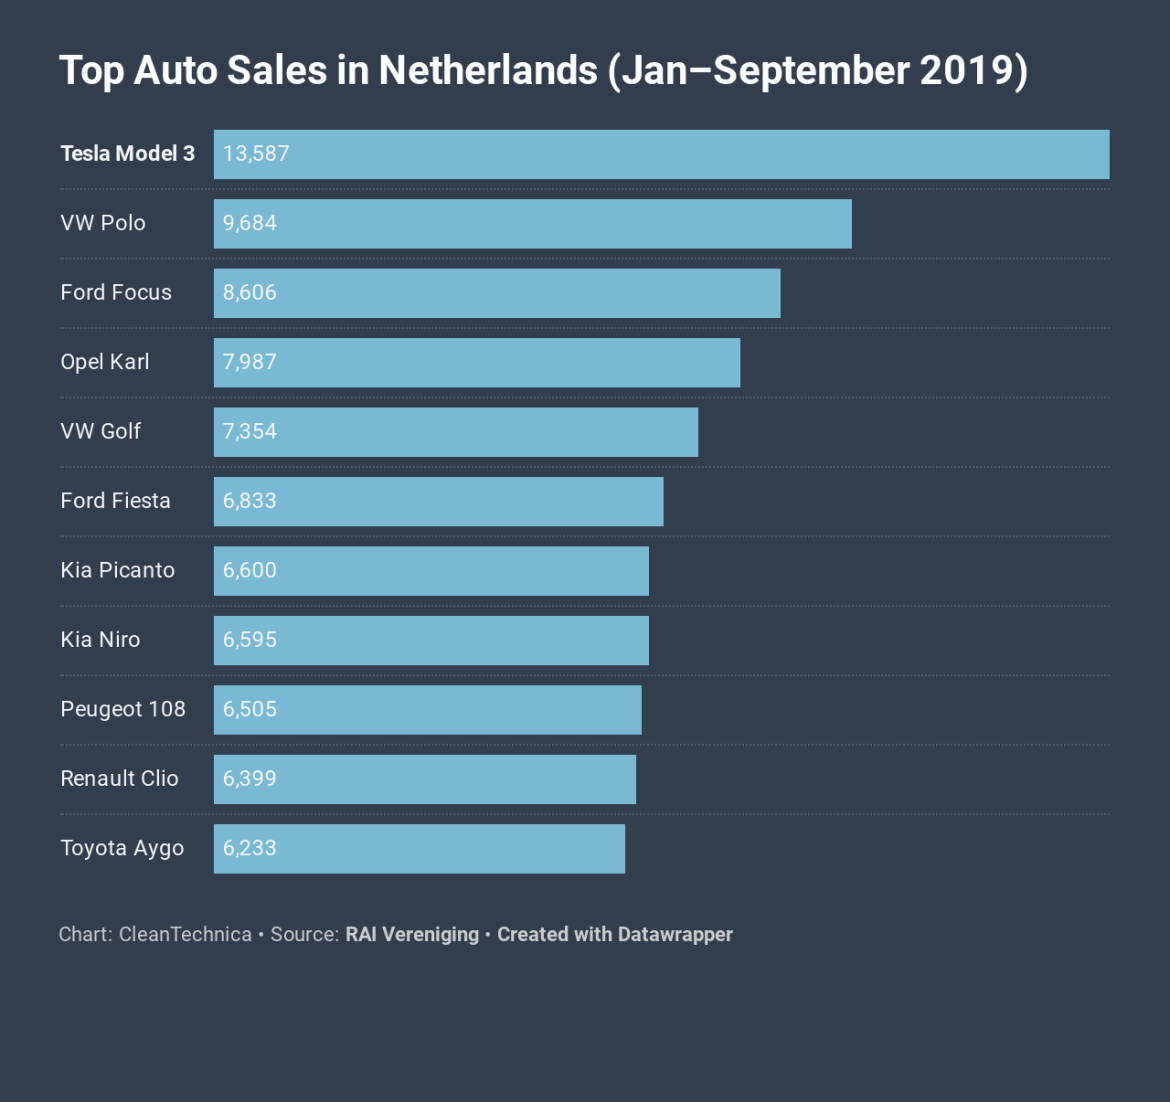 Chart: Top Auto Sales in Netherlands (January-September 2019)